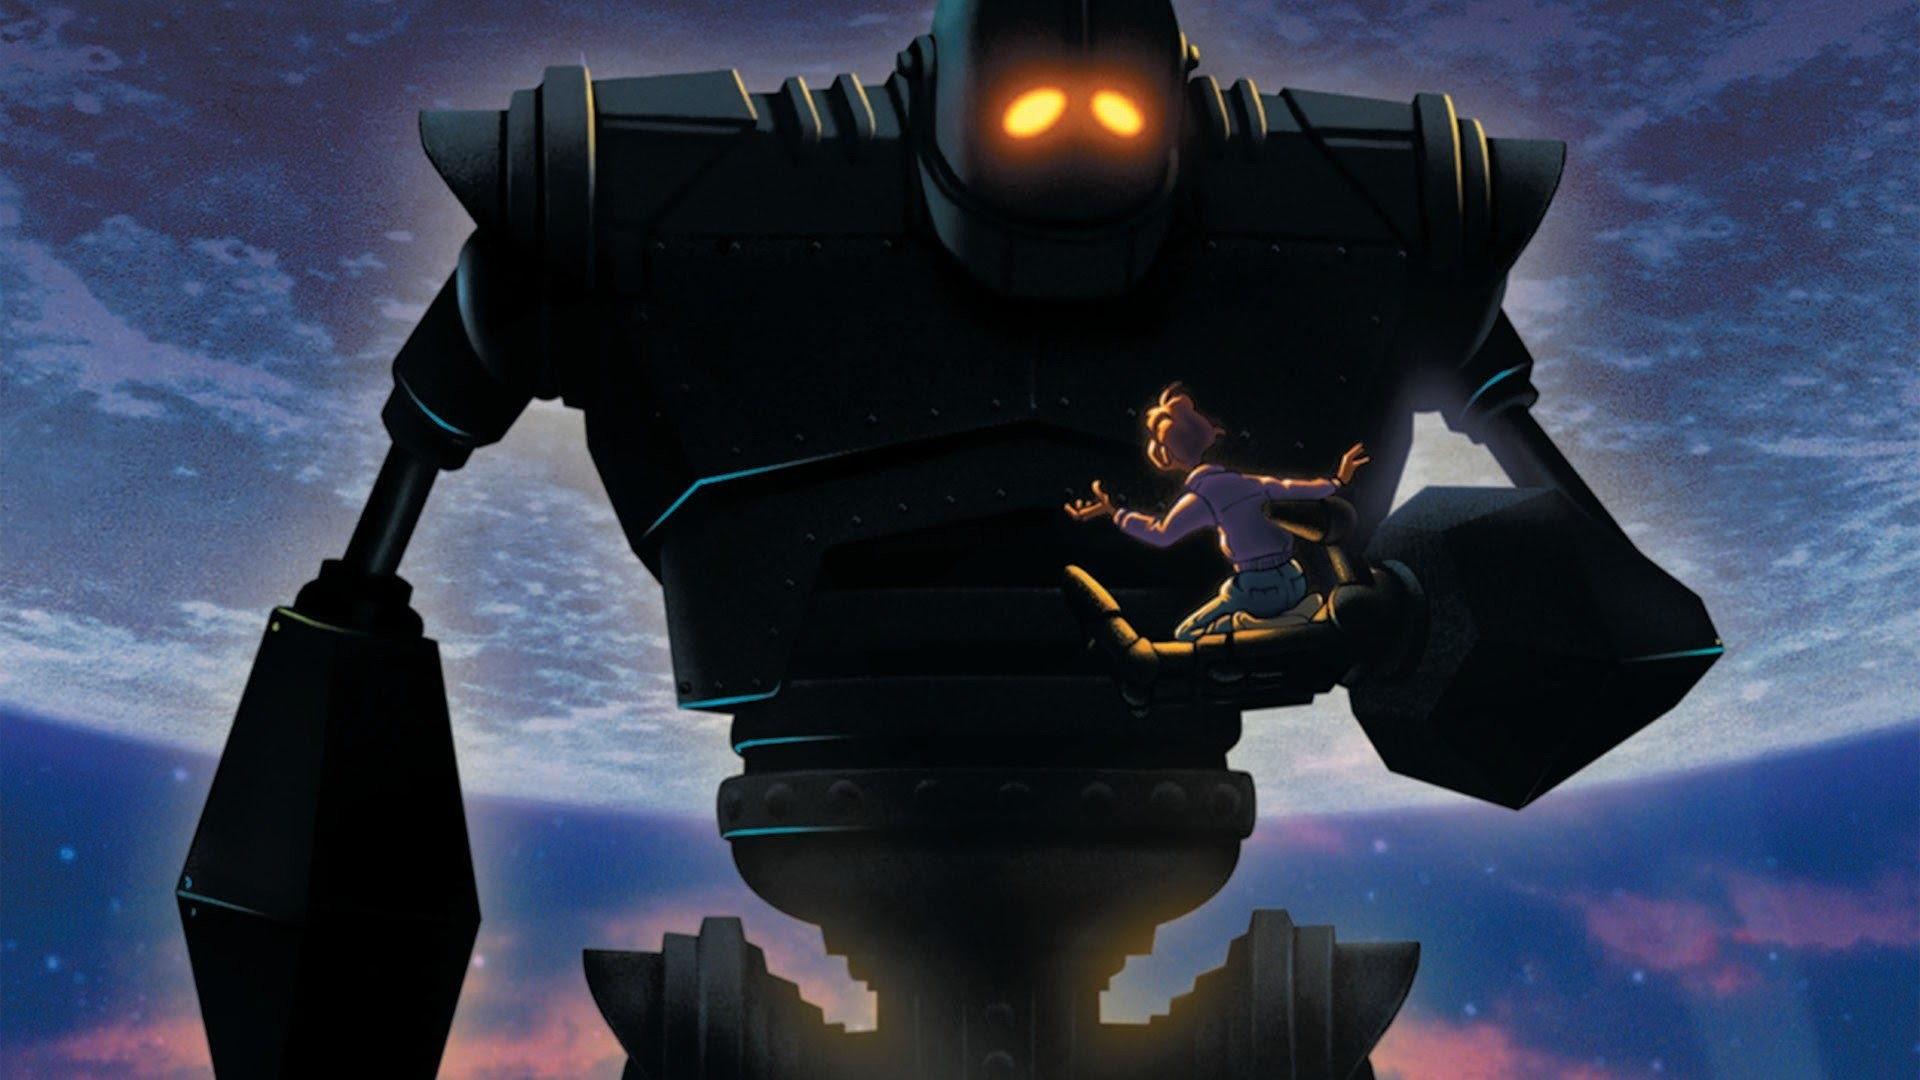 The Iron Giant : Animation Film 1999